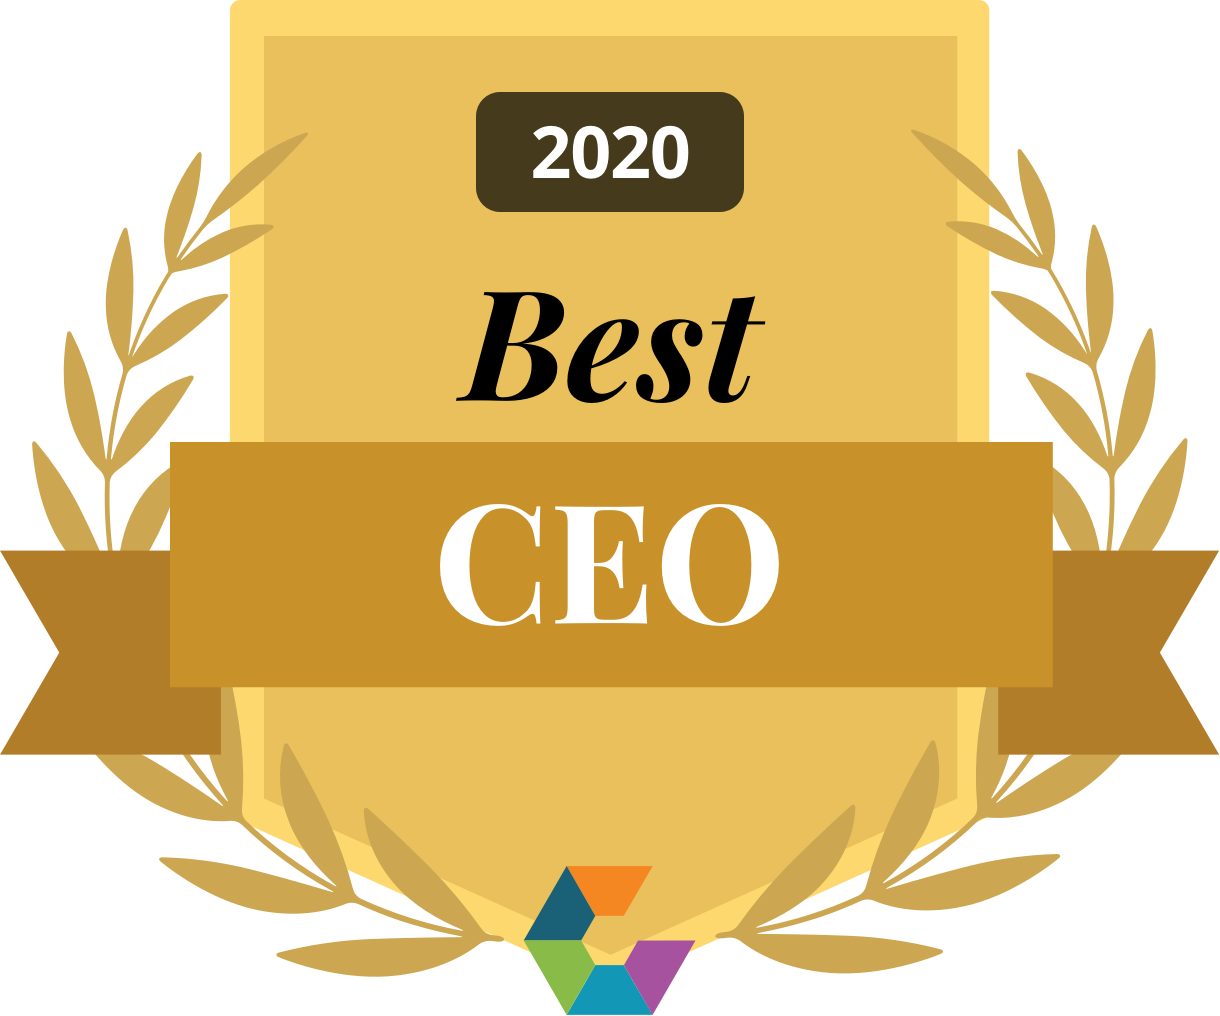 comparably_best_ceo